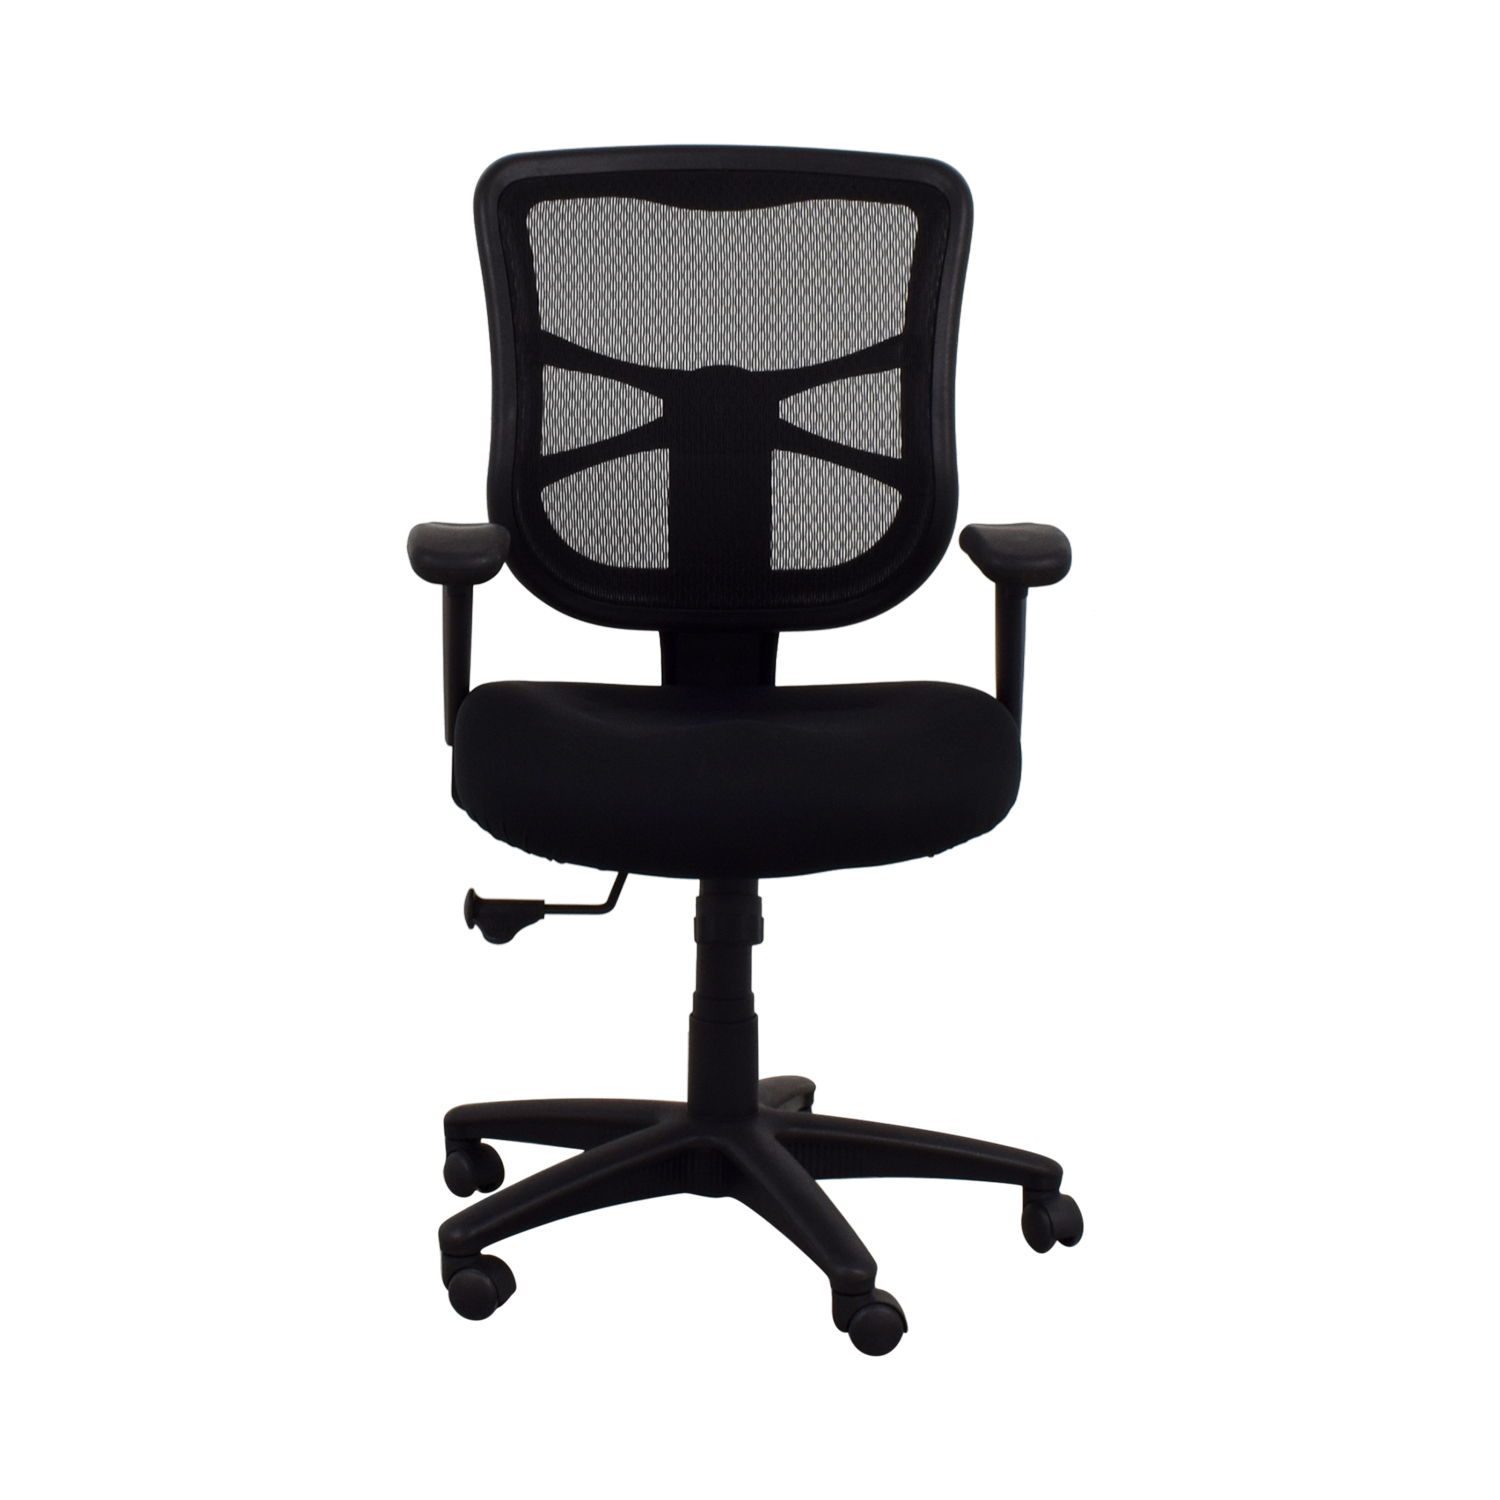 Staples Staples Adjustable Desk Chair second hand